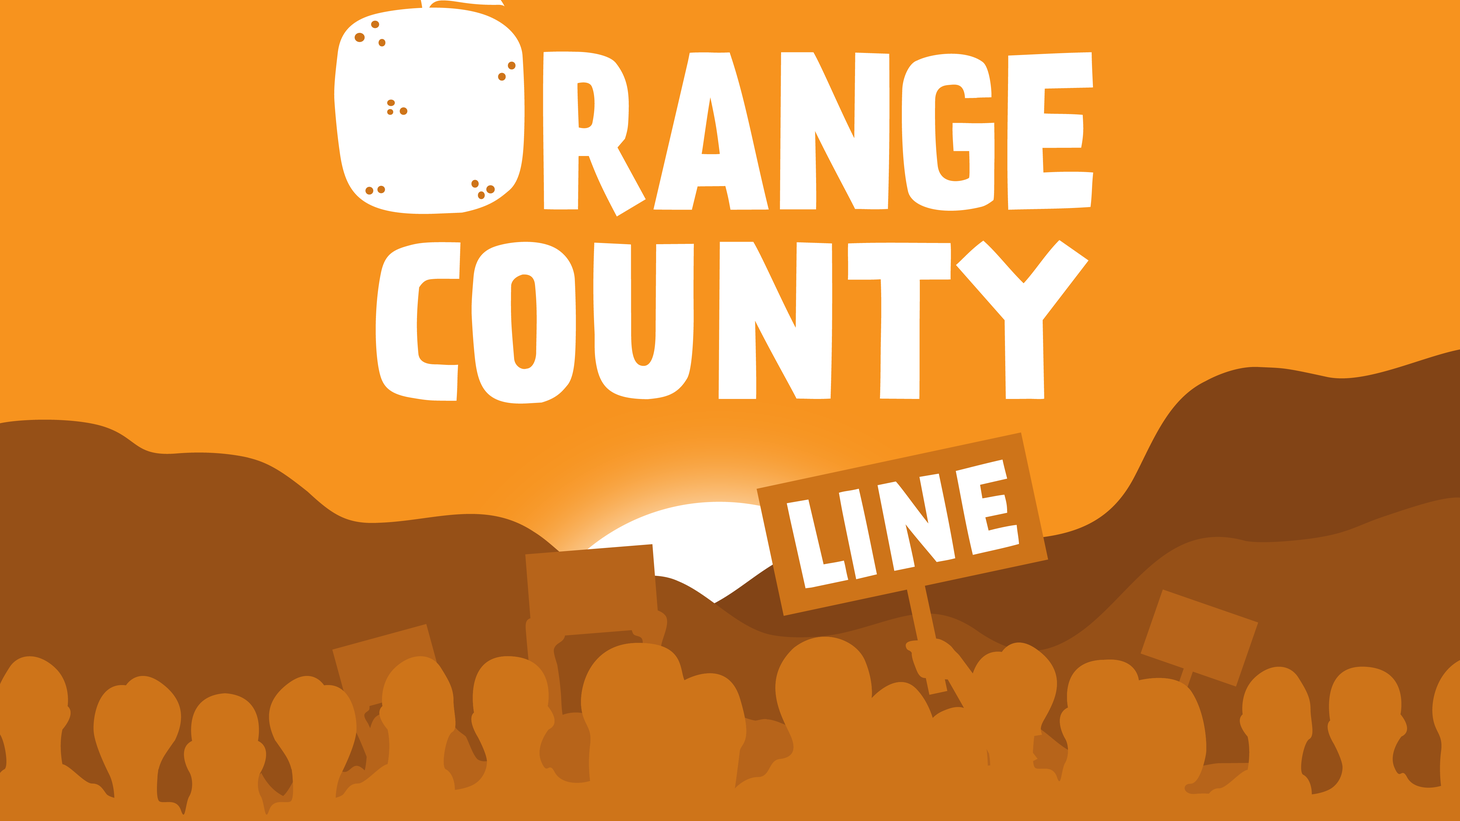 A move by the county seat to become a hub for arts in Orange County.